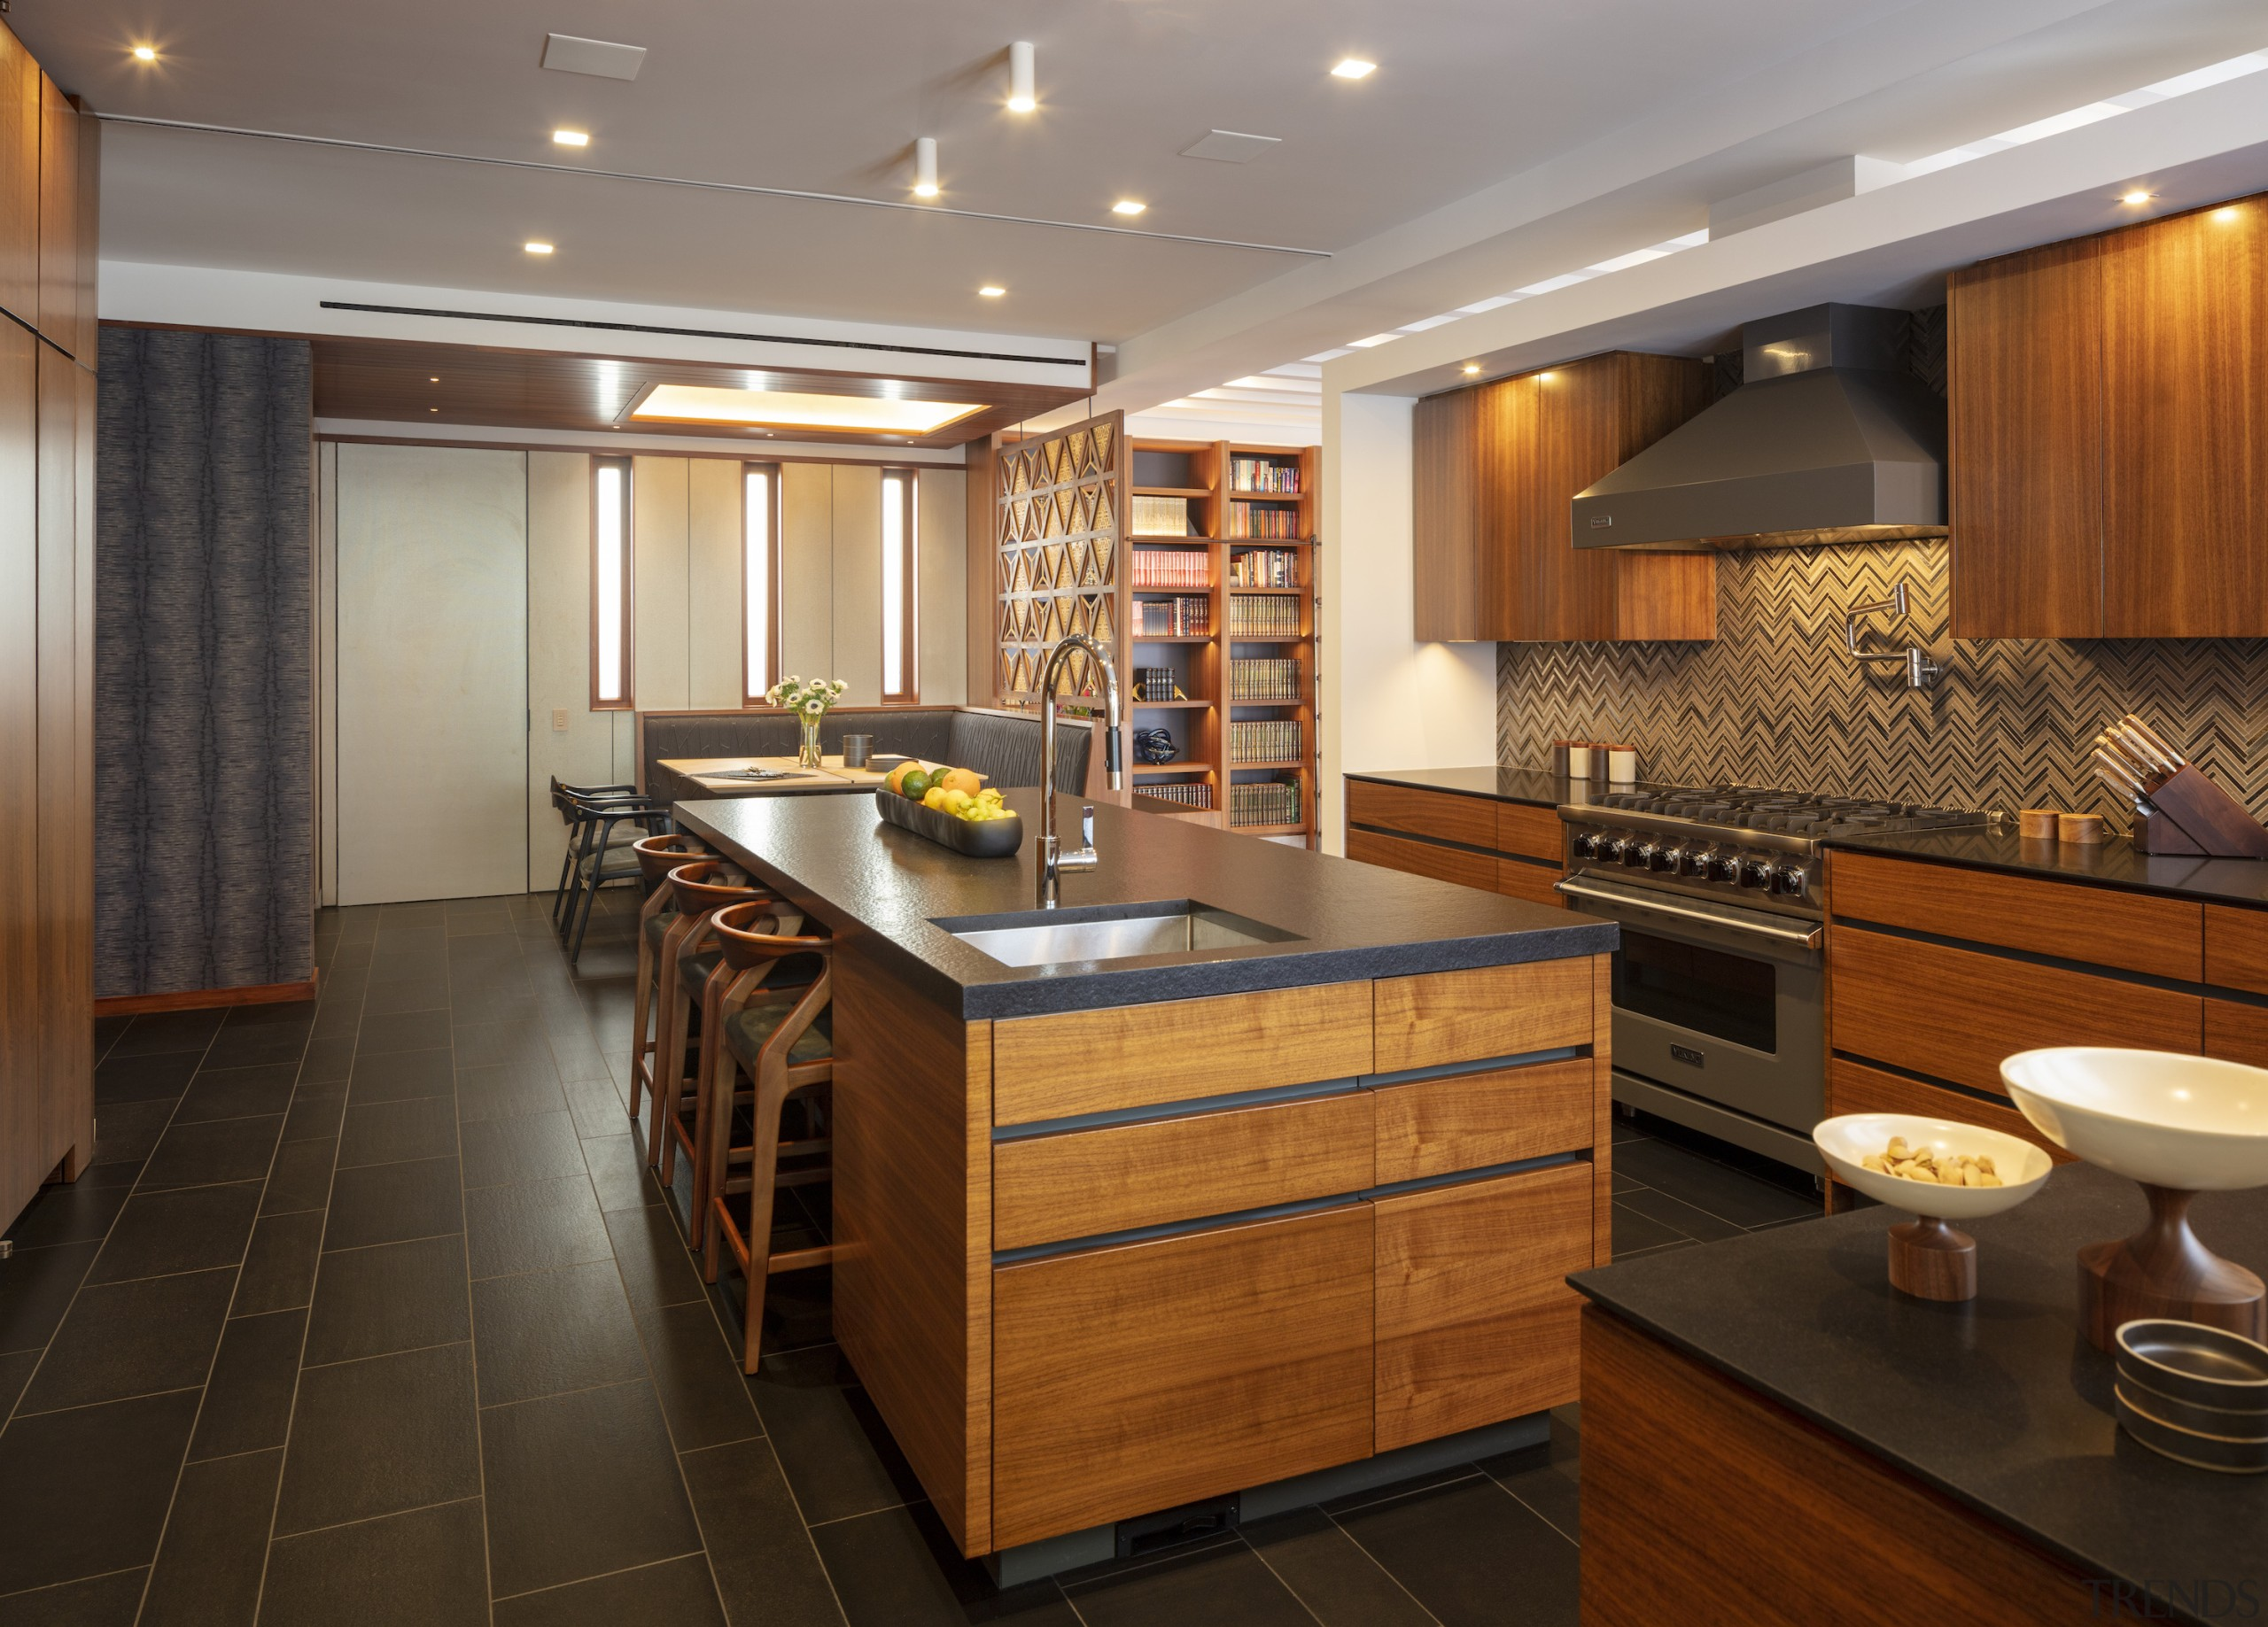 The splashback provides lively contrast within the predominantly